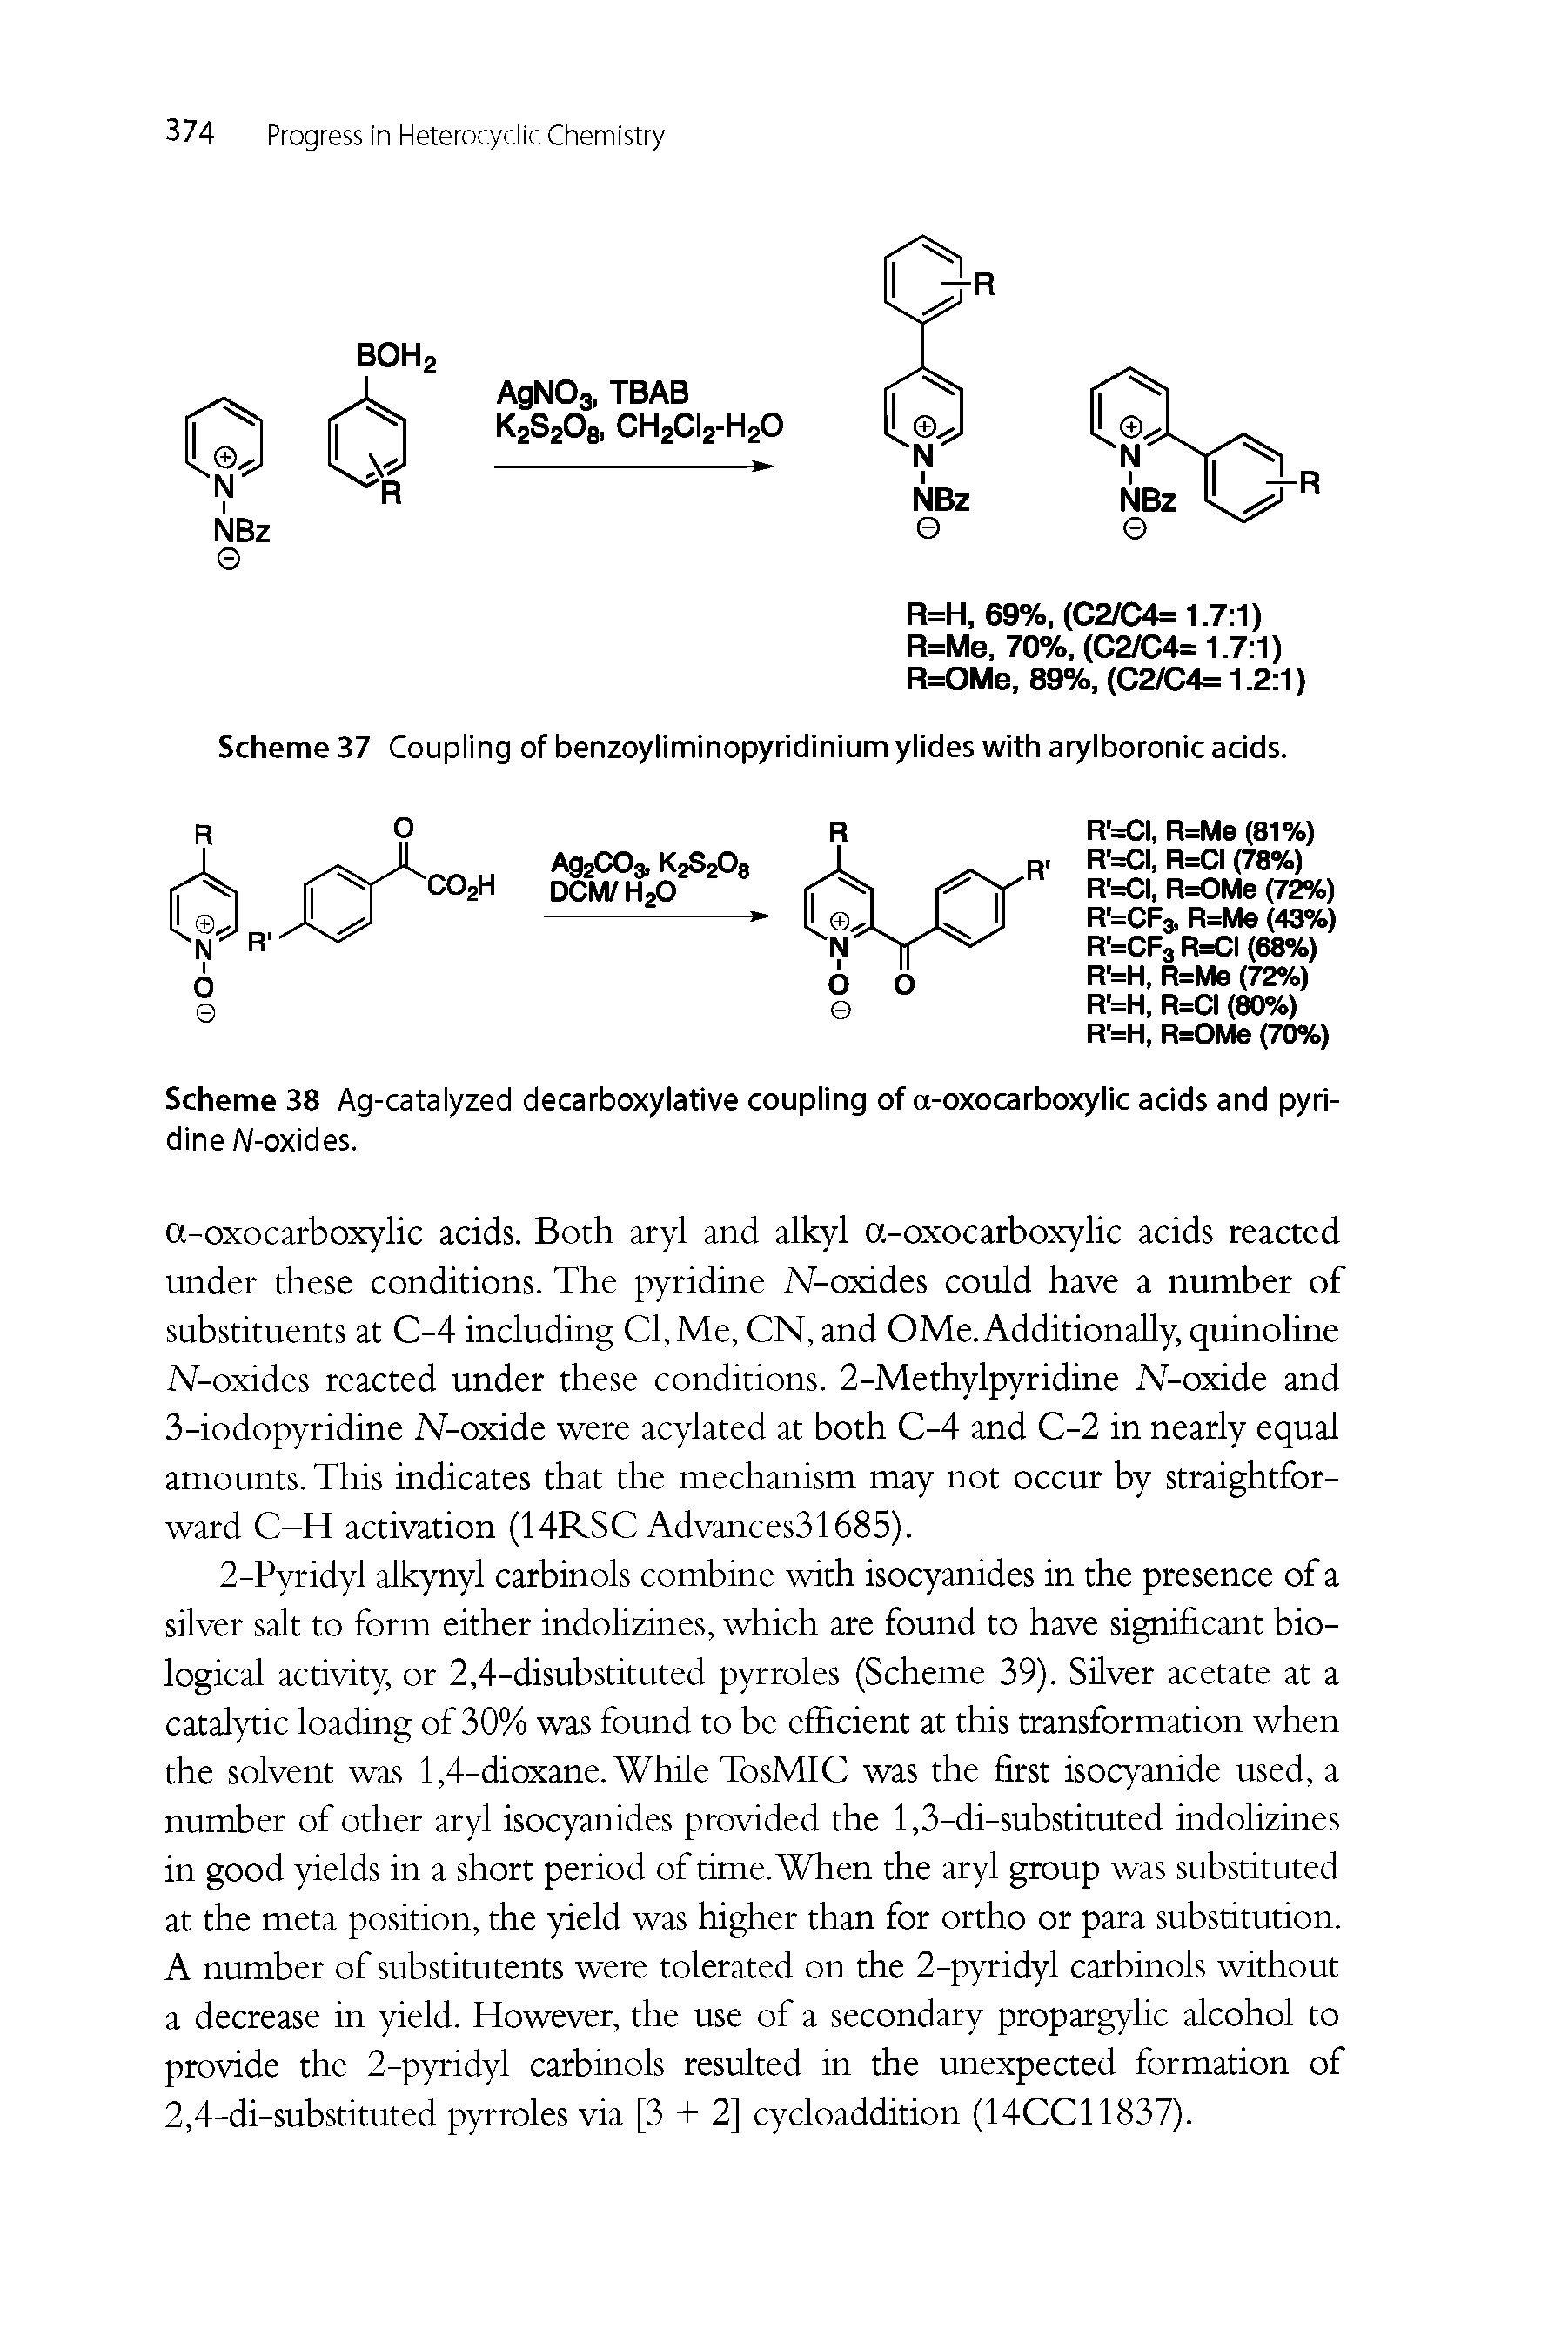 "Scheme 38 Ag-<a href=""/info/decarboxylation_catalyzing"">catalyzed decarboxylative</a> coupling of a-<a href=""/info/oxocarboxylic_acids"">oxocarboxylic acids</a> and pyridine A/-oxides."